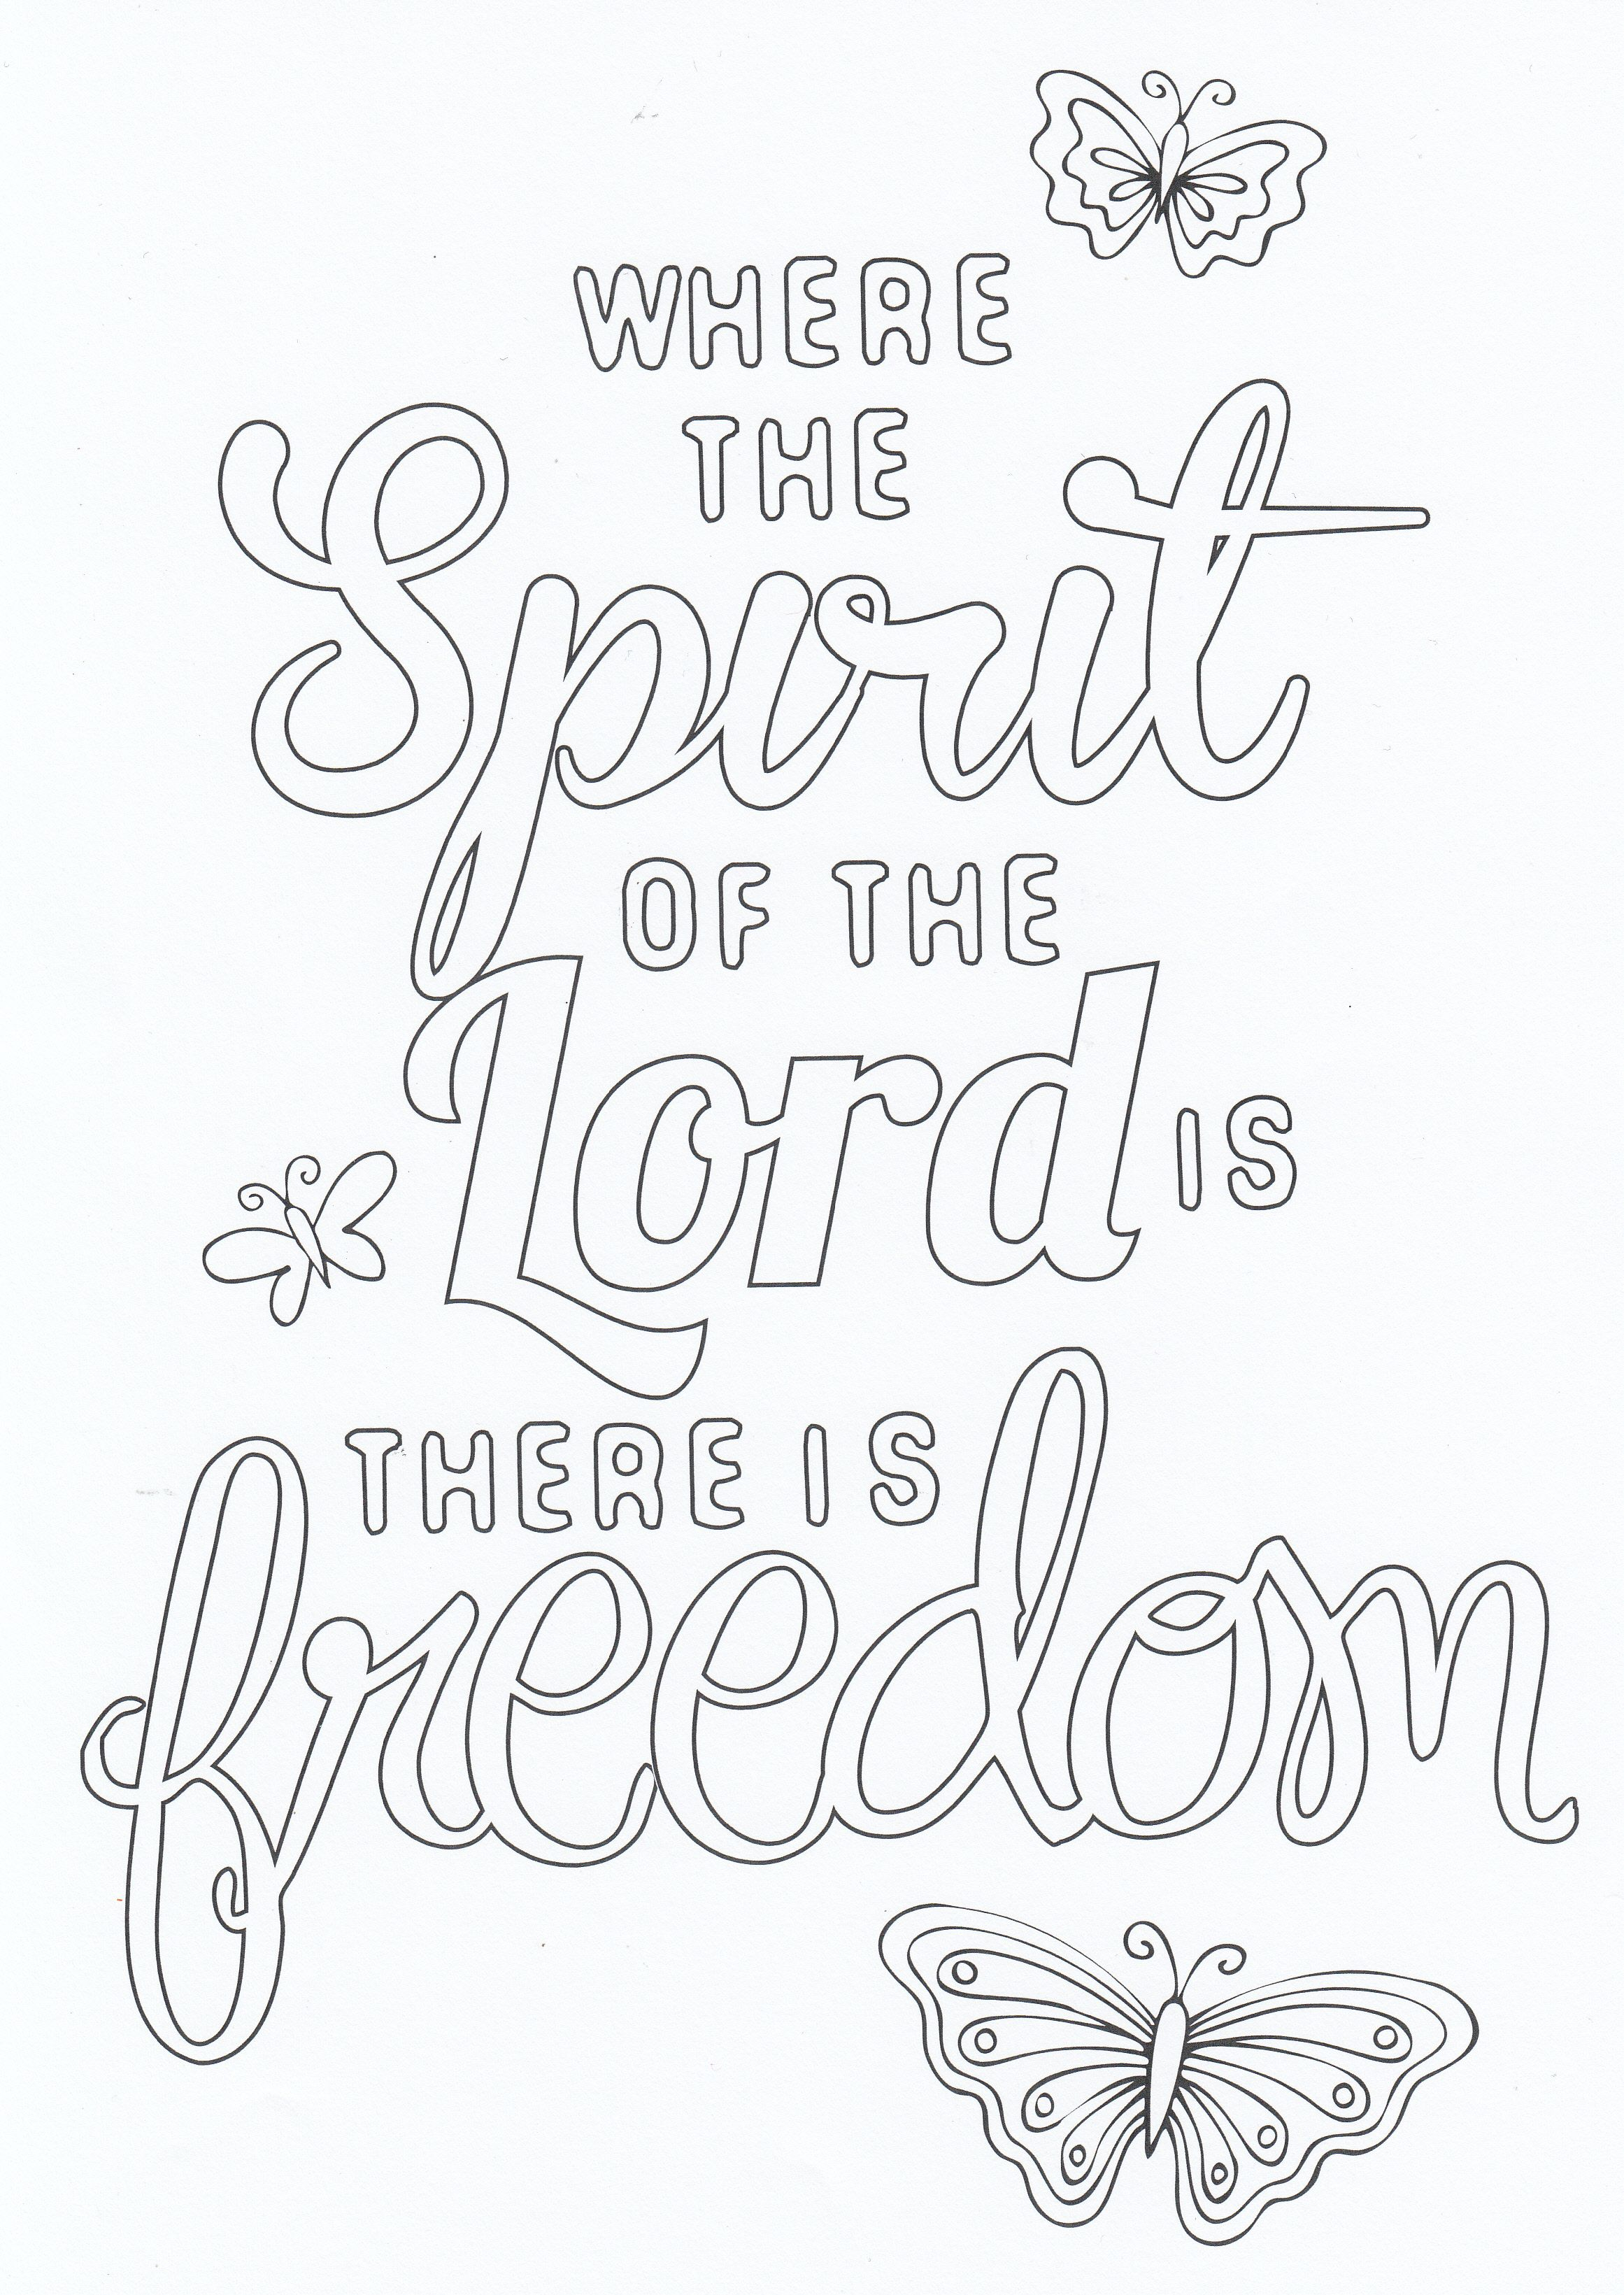 Where The Spirit Of The Lord Is There Is Freedom Quote Coloring Pages Bible Coloring Pages Bible Verse Coloring